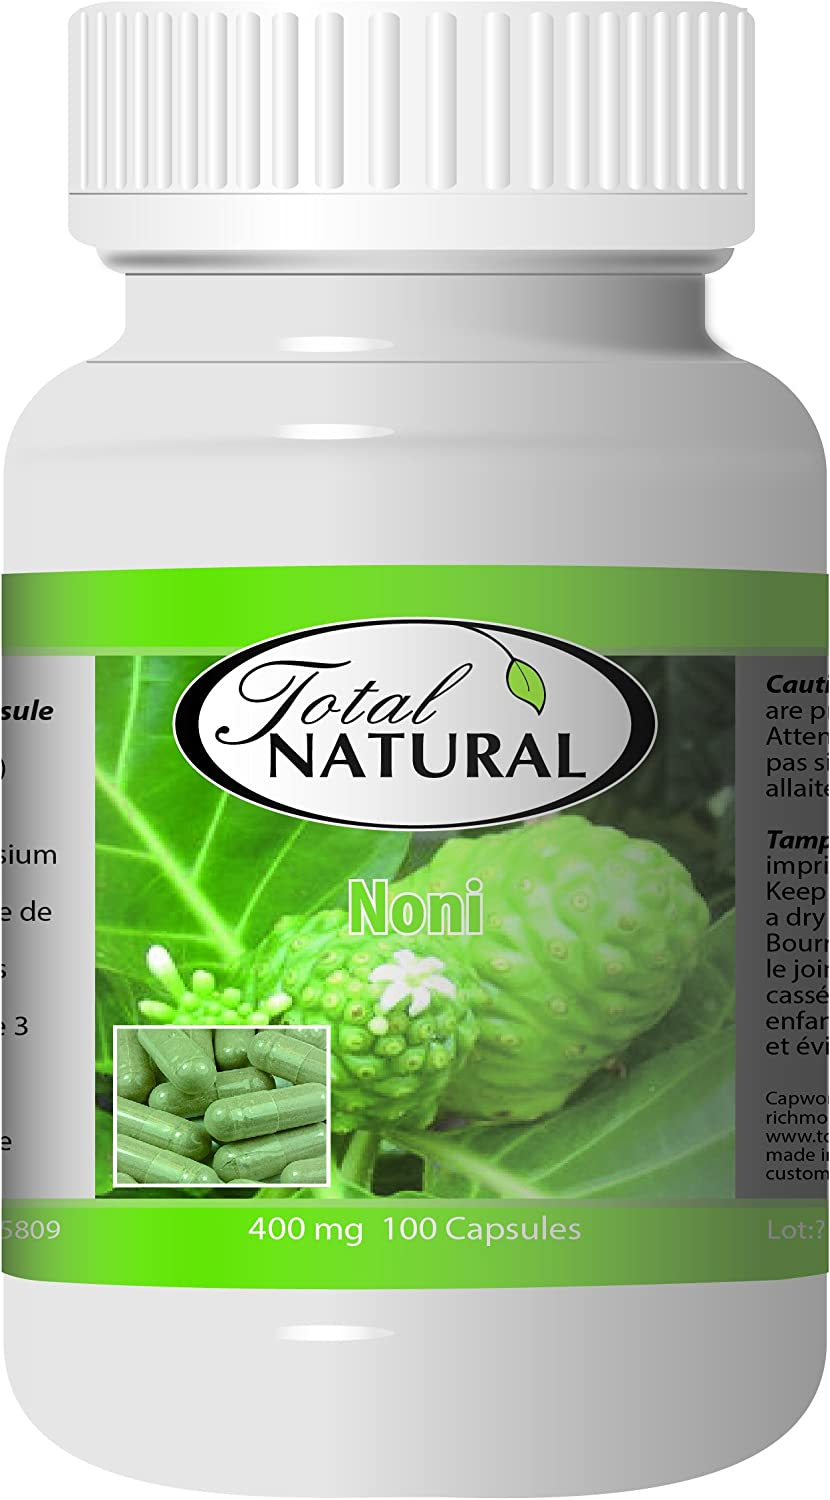 Noni 400mg 100c Max 67% OFF 12 Super intense SALE Bottles by Pure Total 100% I Natural